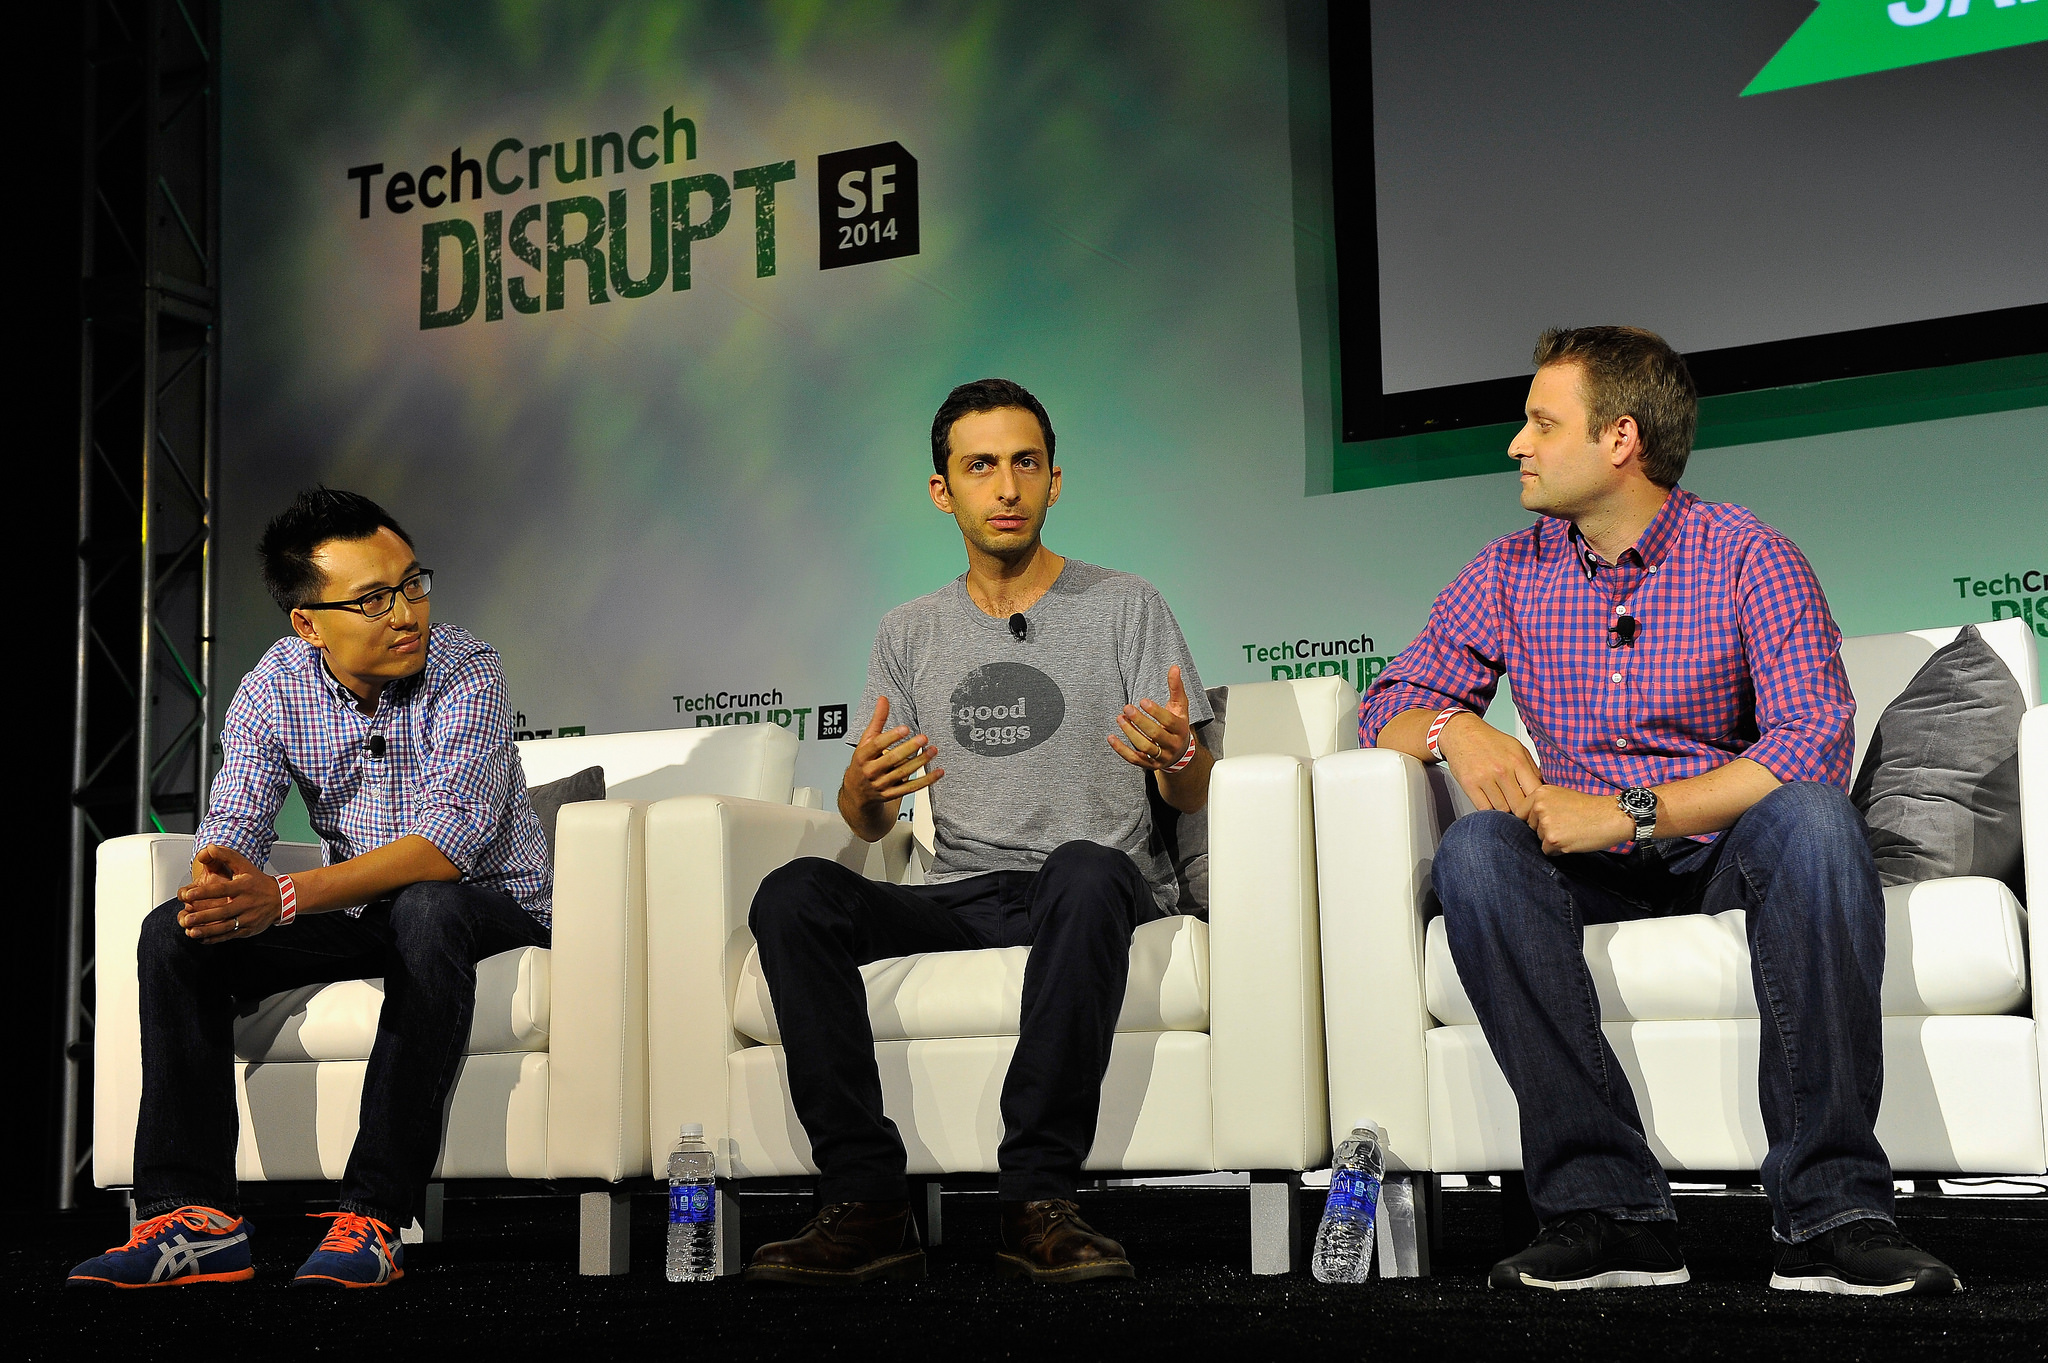 Rob Spiro at TechCrunch